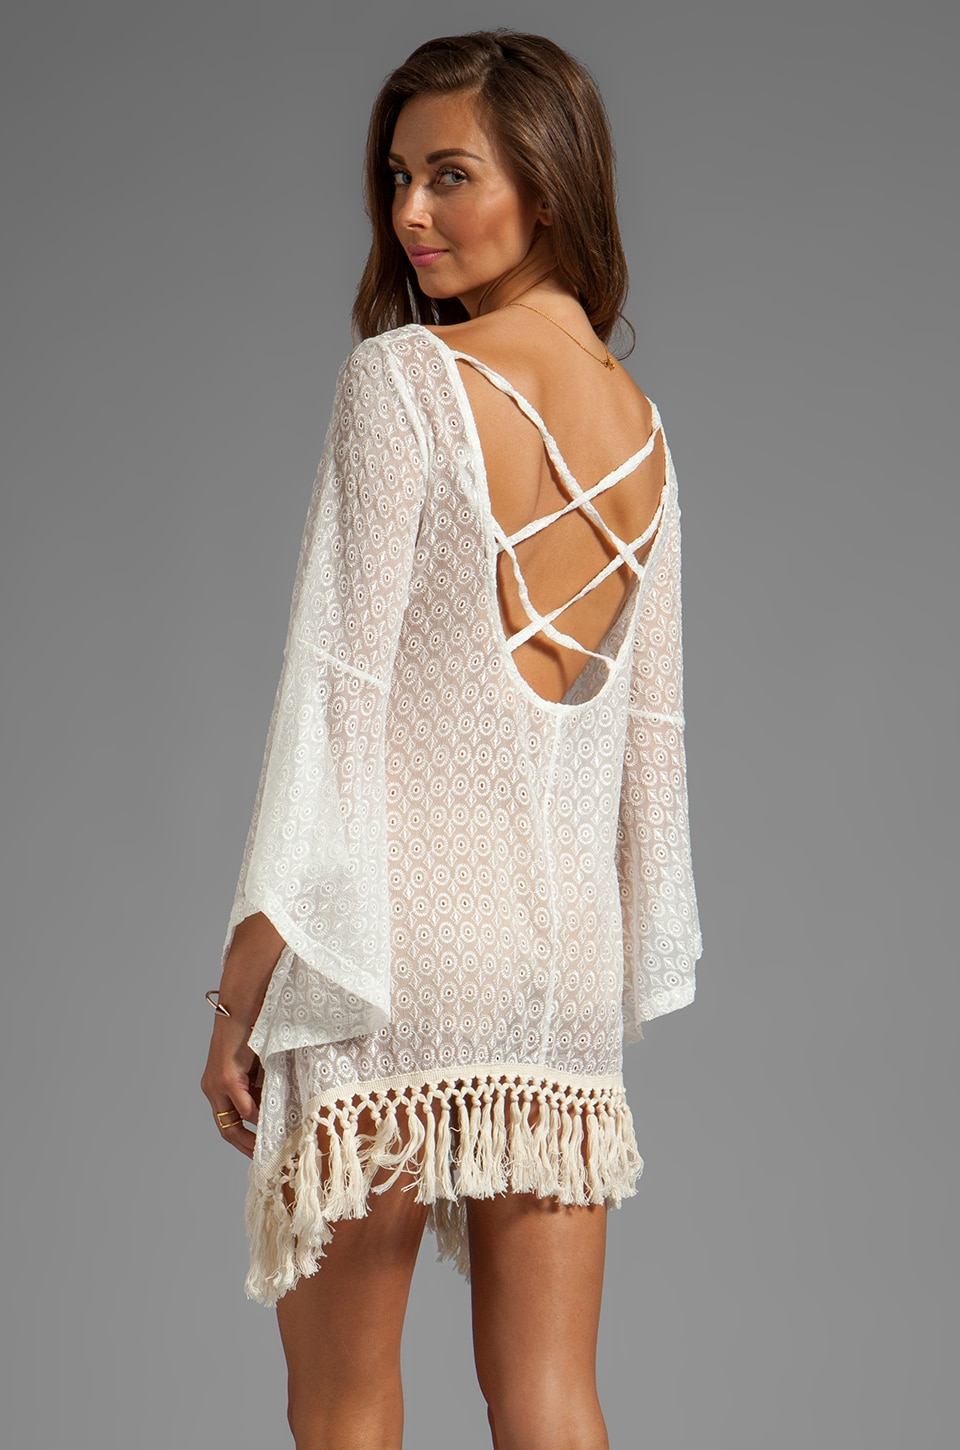 Gypsy Junkies Mimi Eyelet Tunic in White